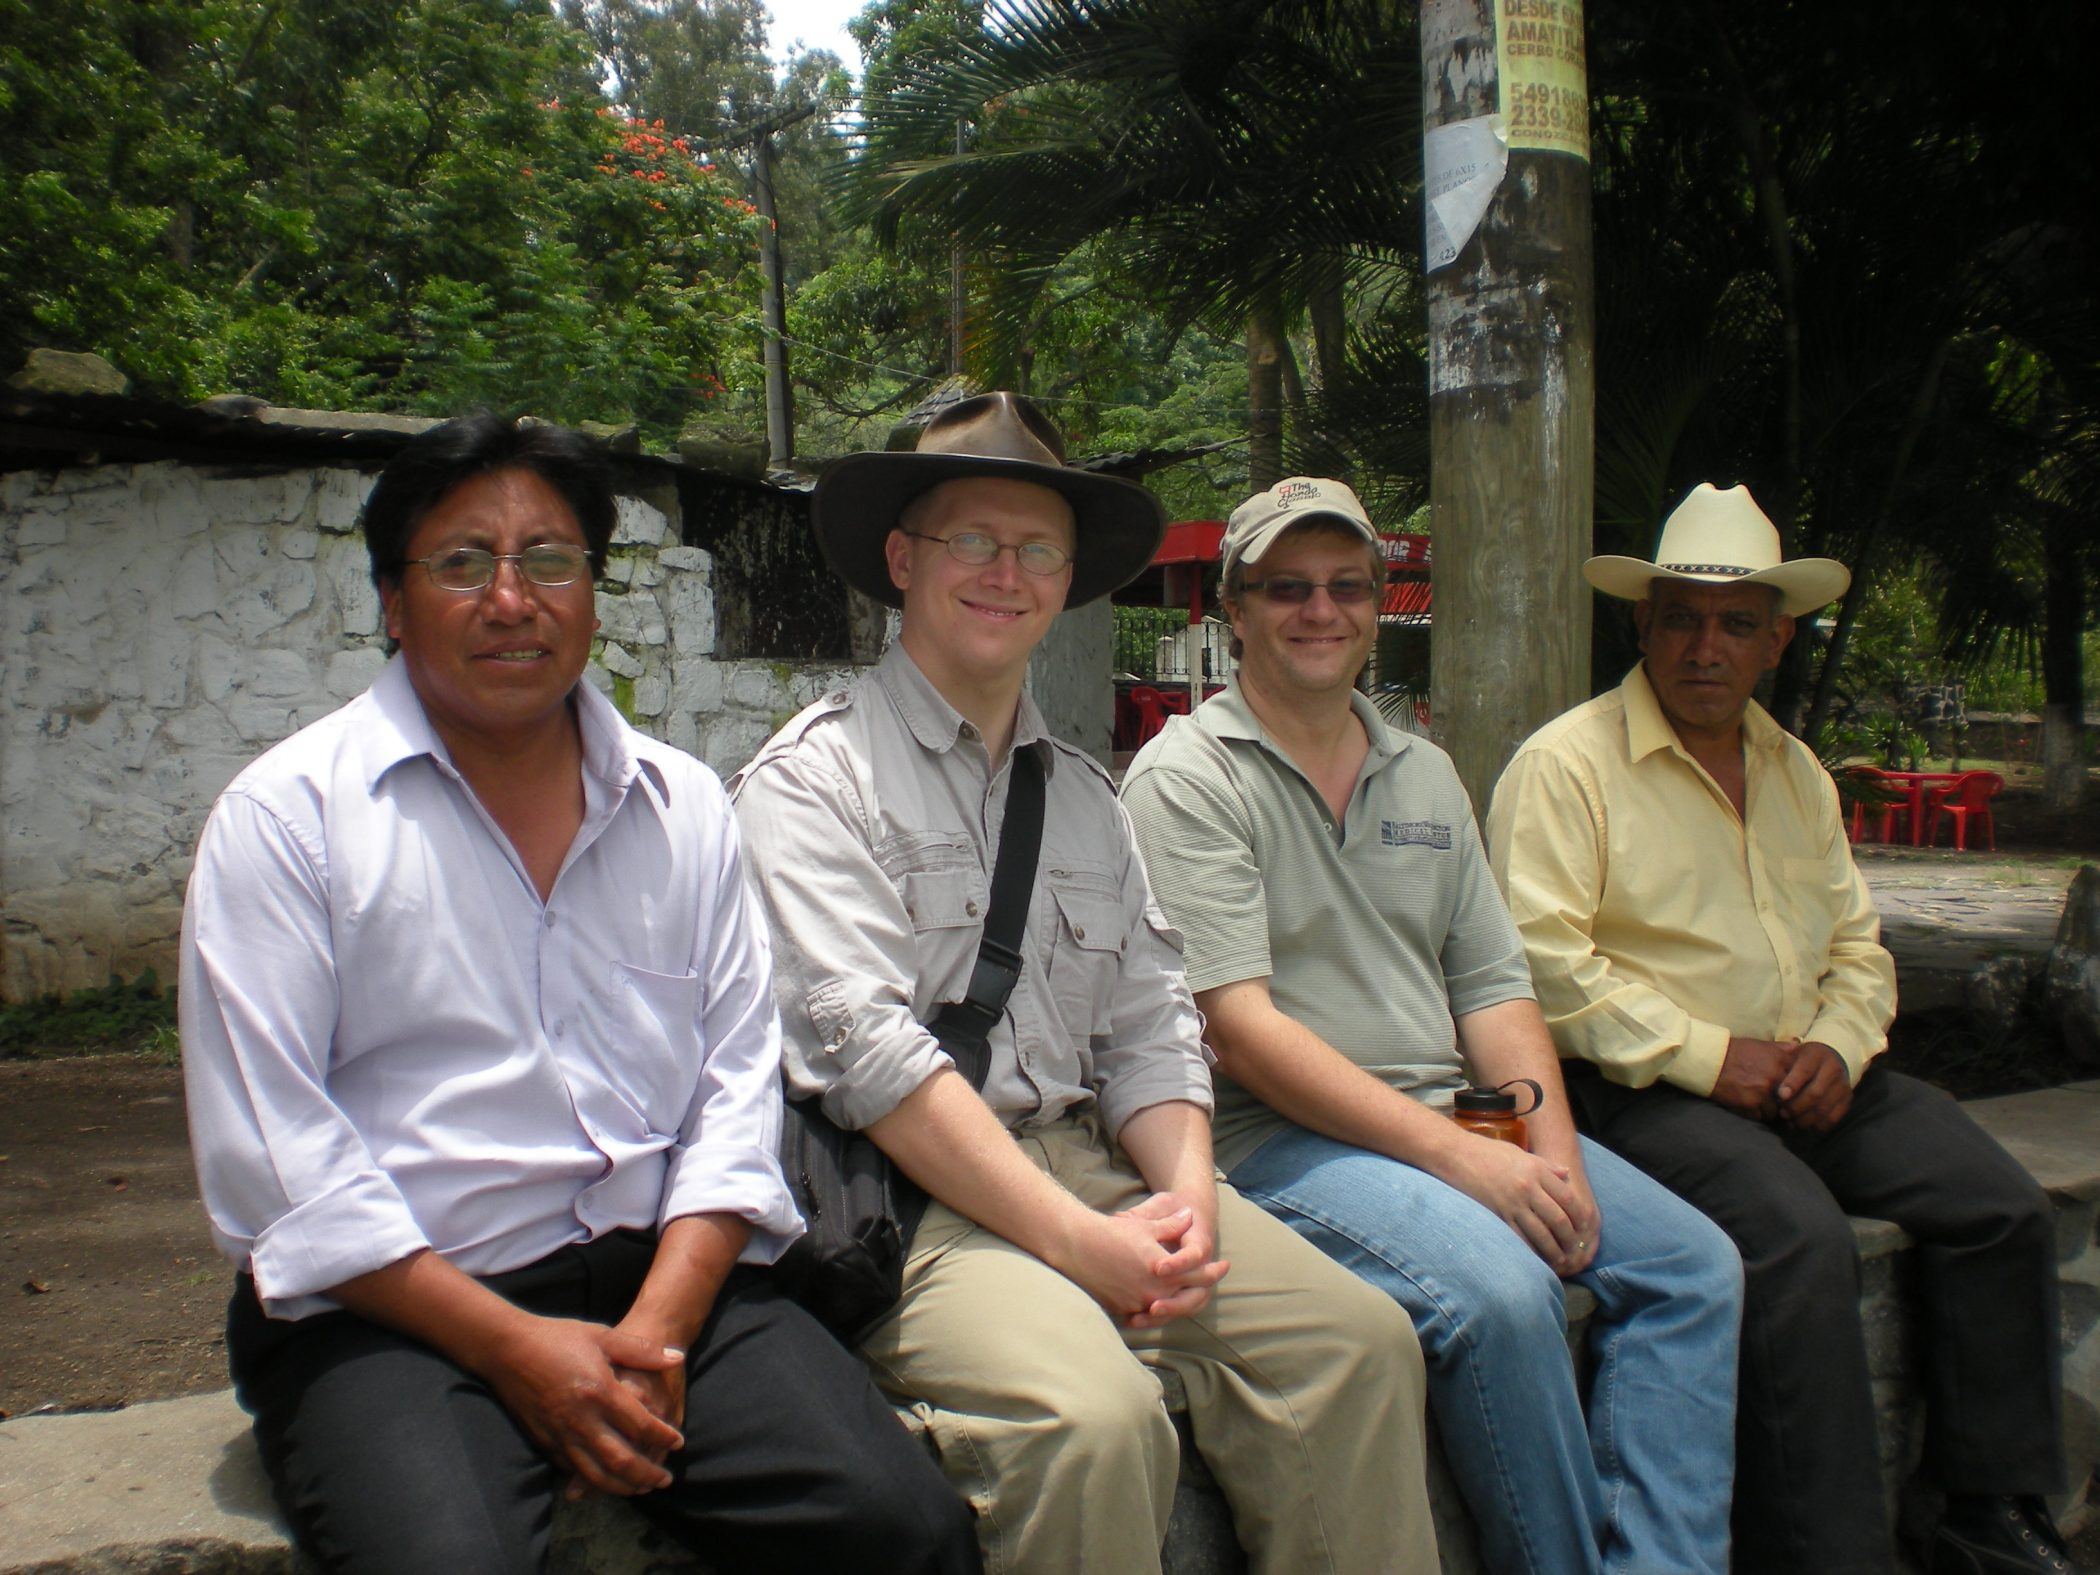 4 Men sitting on a wall connecting over evangelism